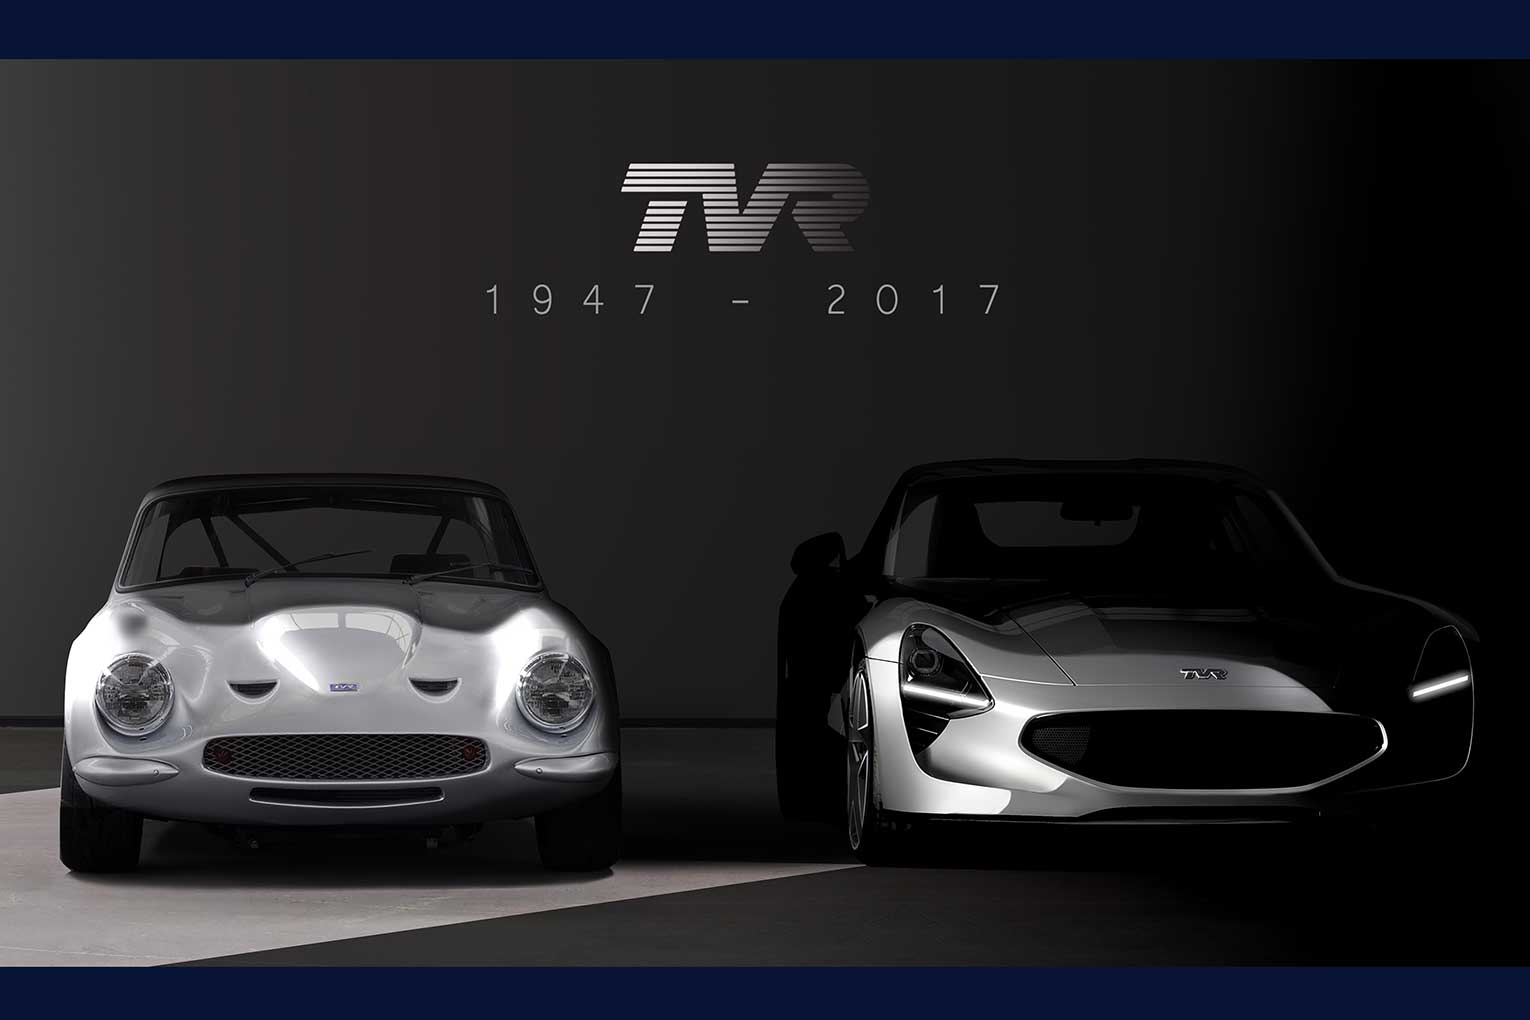 TVR sports car launch backed by bridging lender